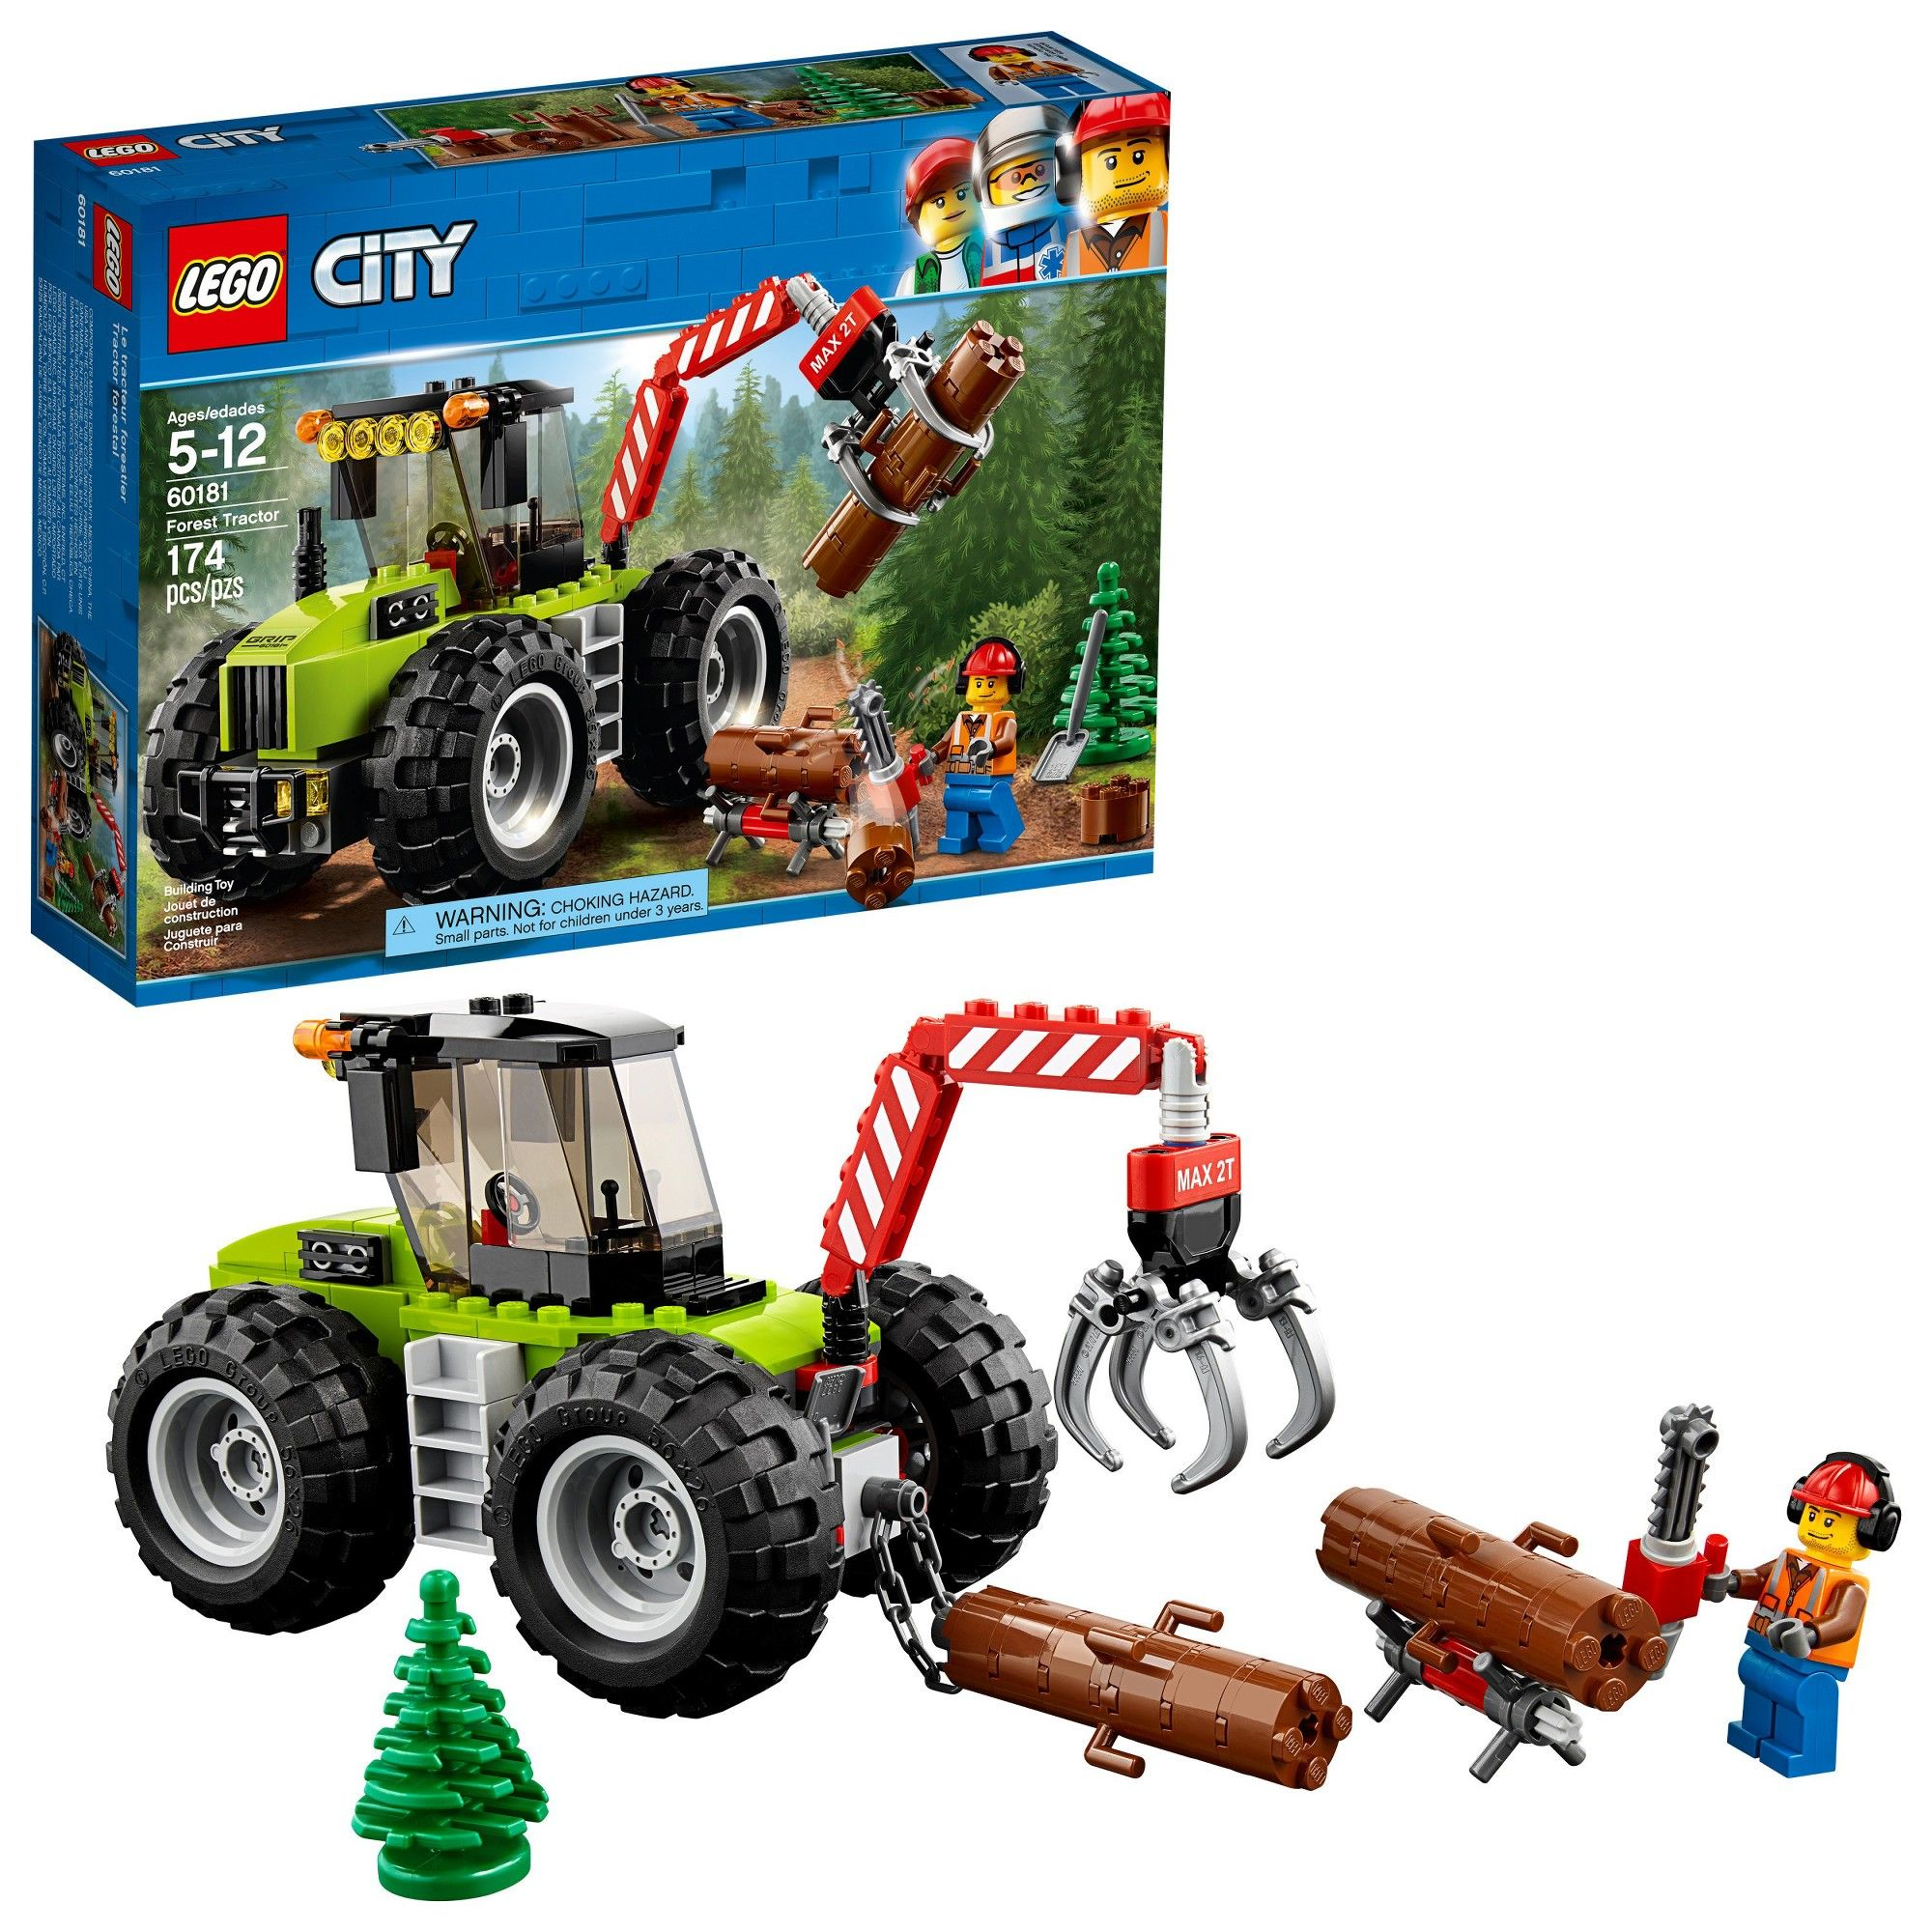 Toys images for boys  Lego City Great Vehicles Forest Tractor   Products  Pinterest